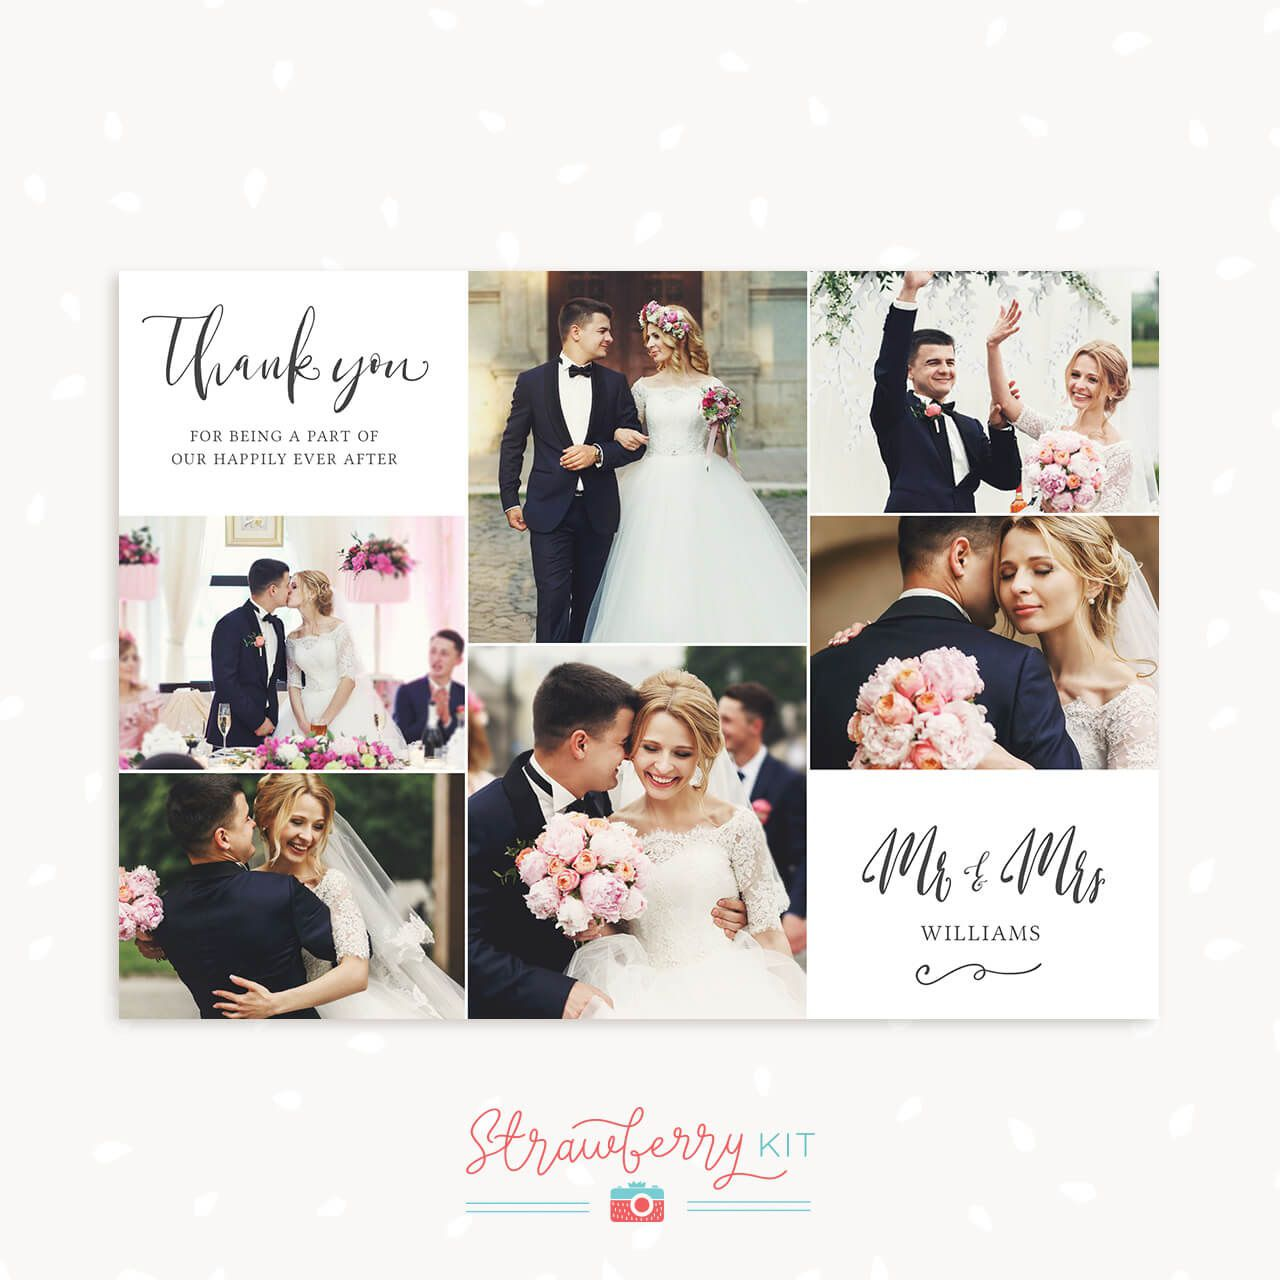 005 Excellent Wedding Thank You Card Template Idea  Message Sample Free Download Wording For MoneyFull